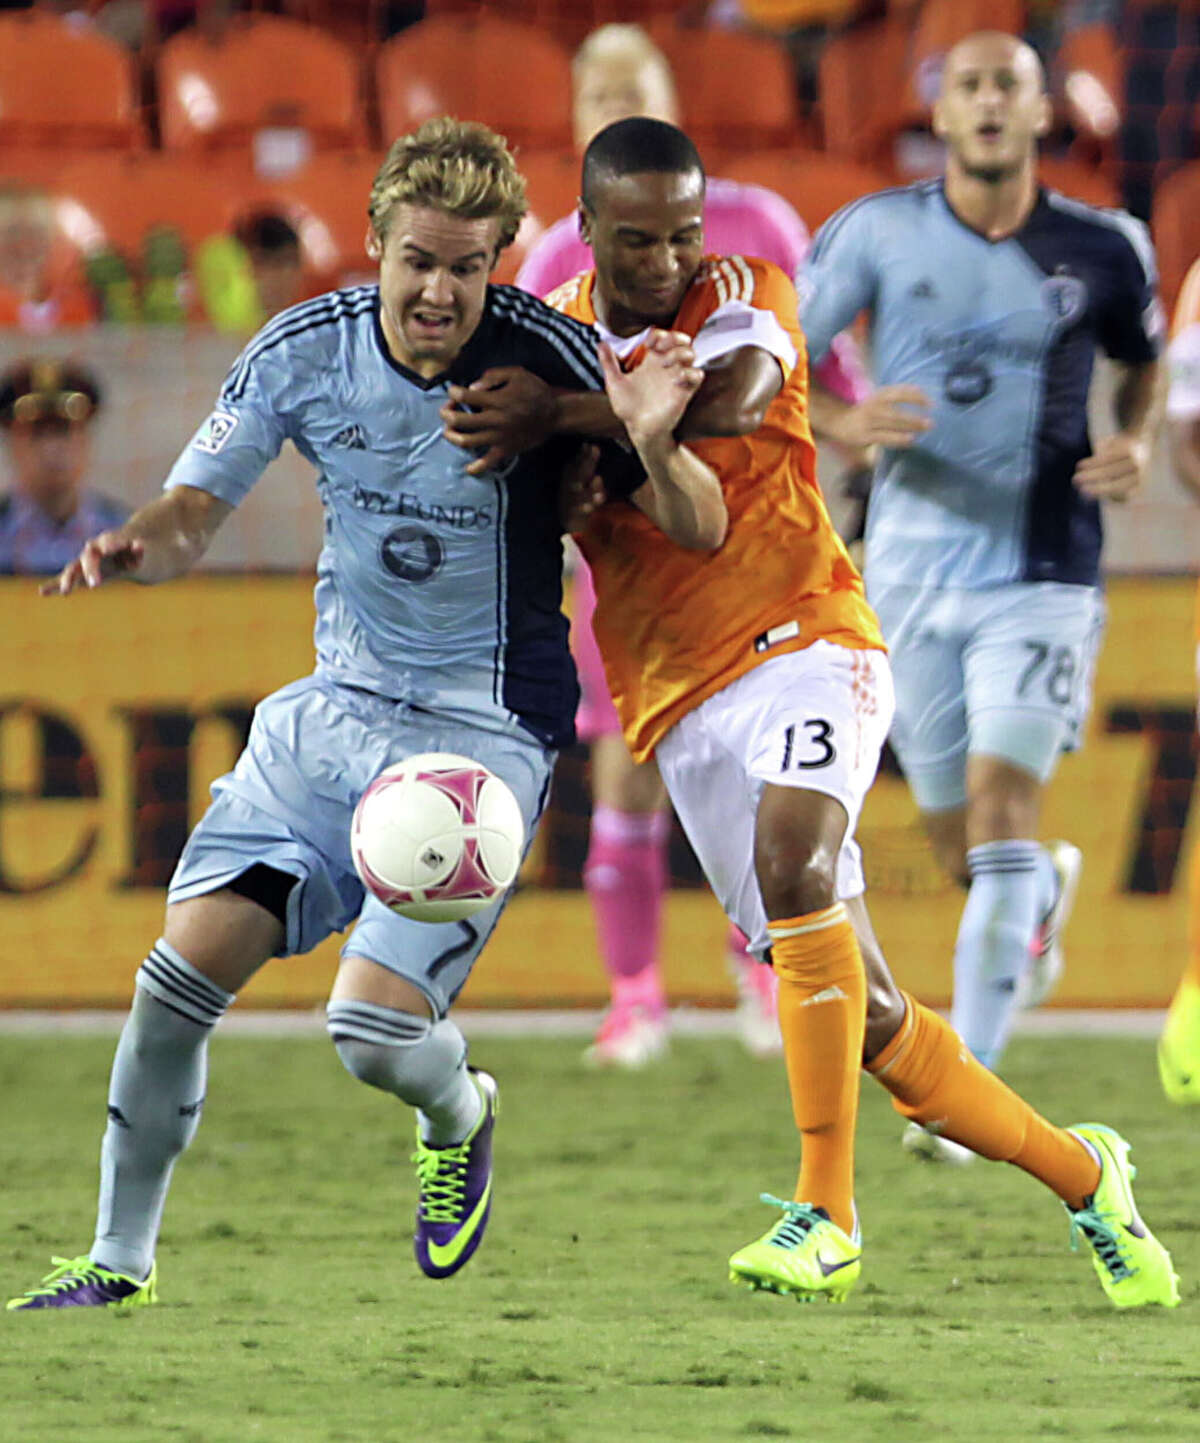 Sporting KC defender/midfielder Chance Myers left, and Houston Dynamo midfielder Ricardo Clark right, tangle during the first half of MLS game action at BBVA Compass Stadium Wednesday, Oct. 9, 2013, in Houston.